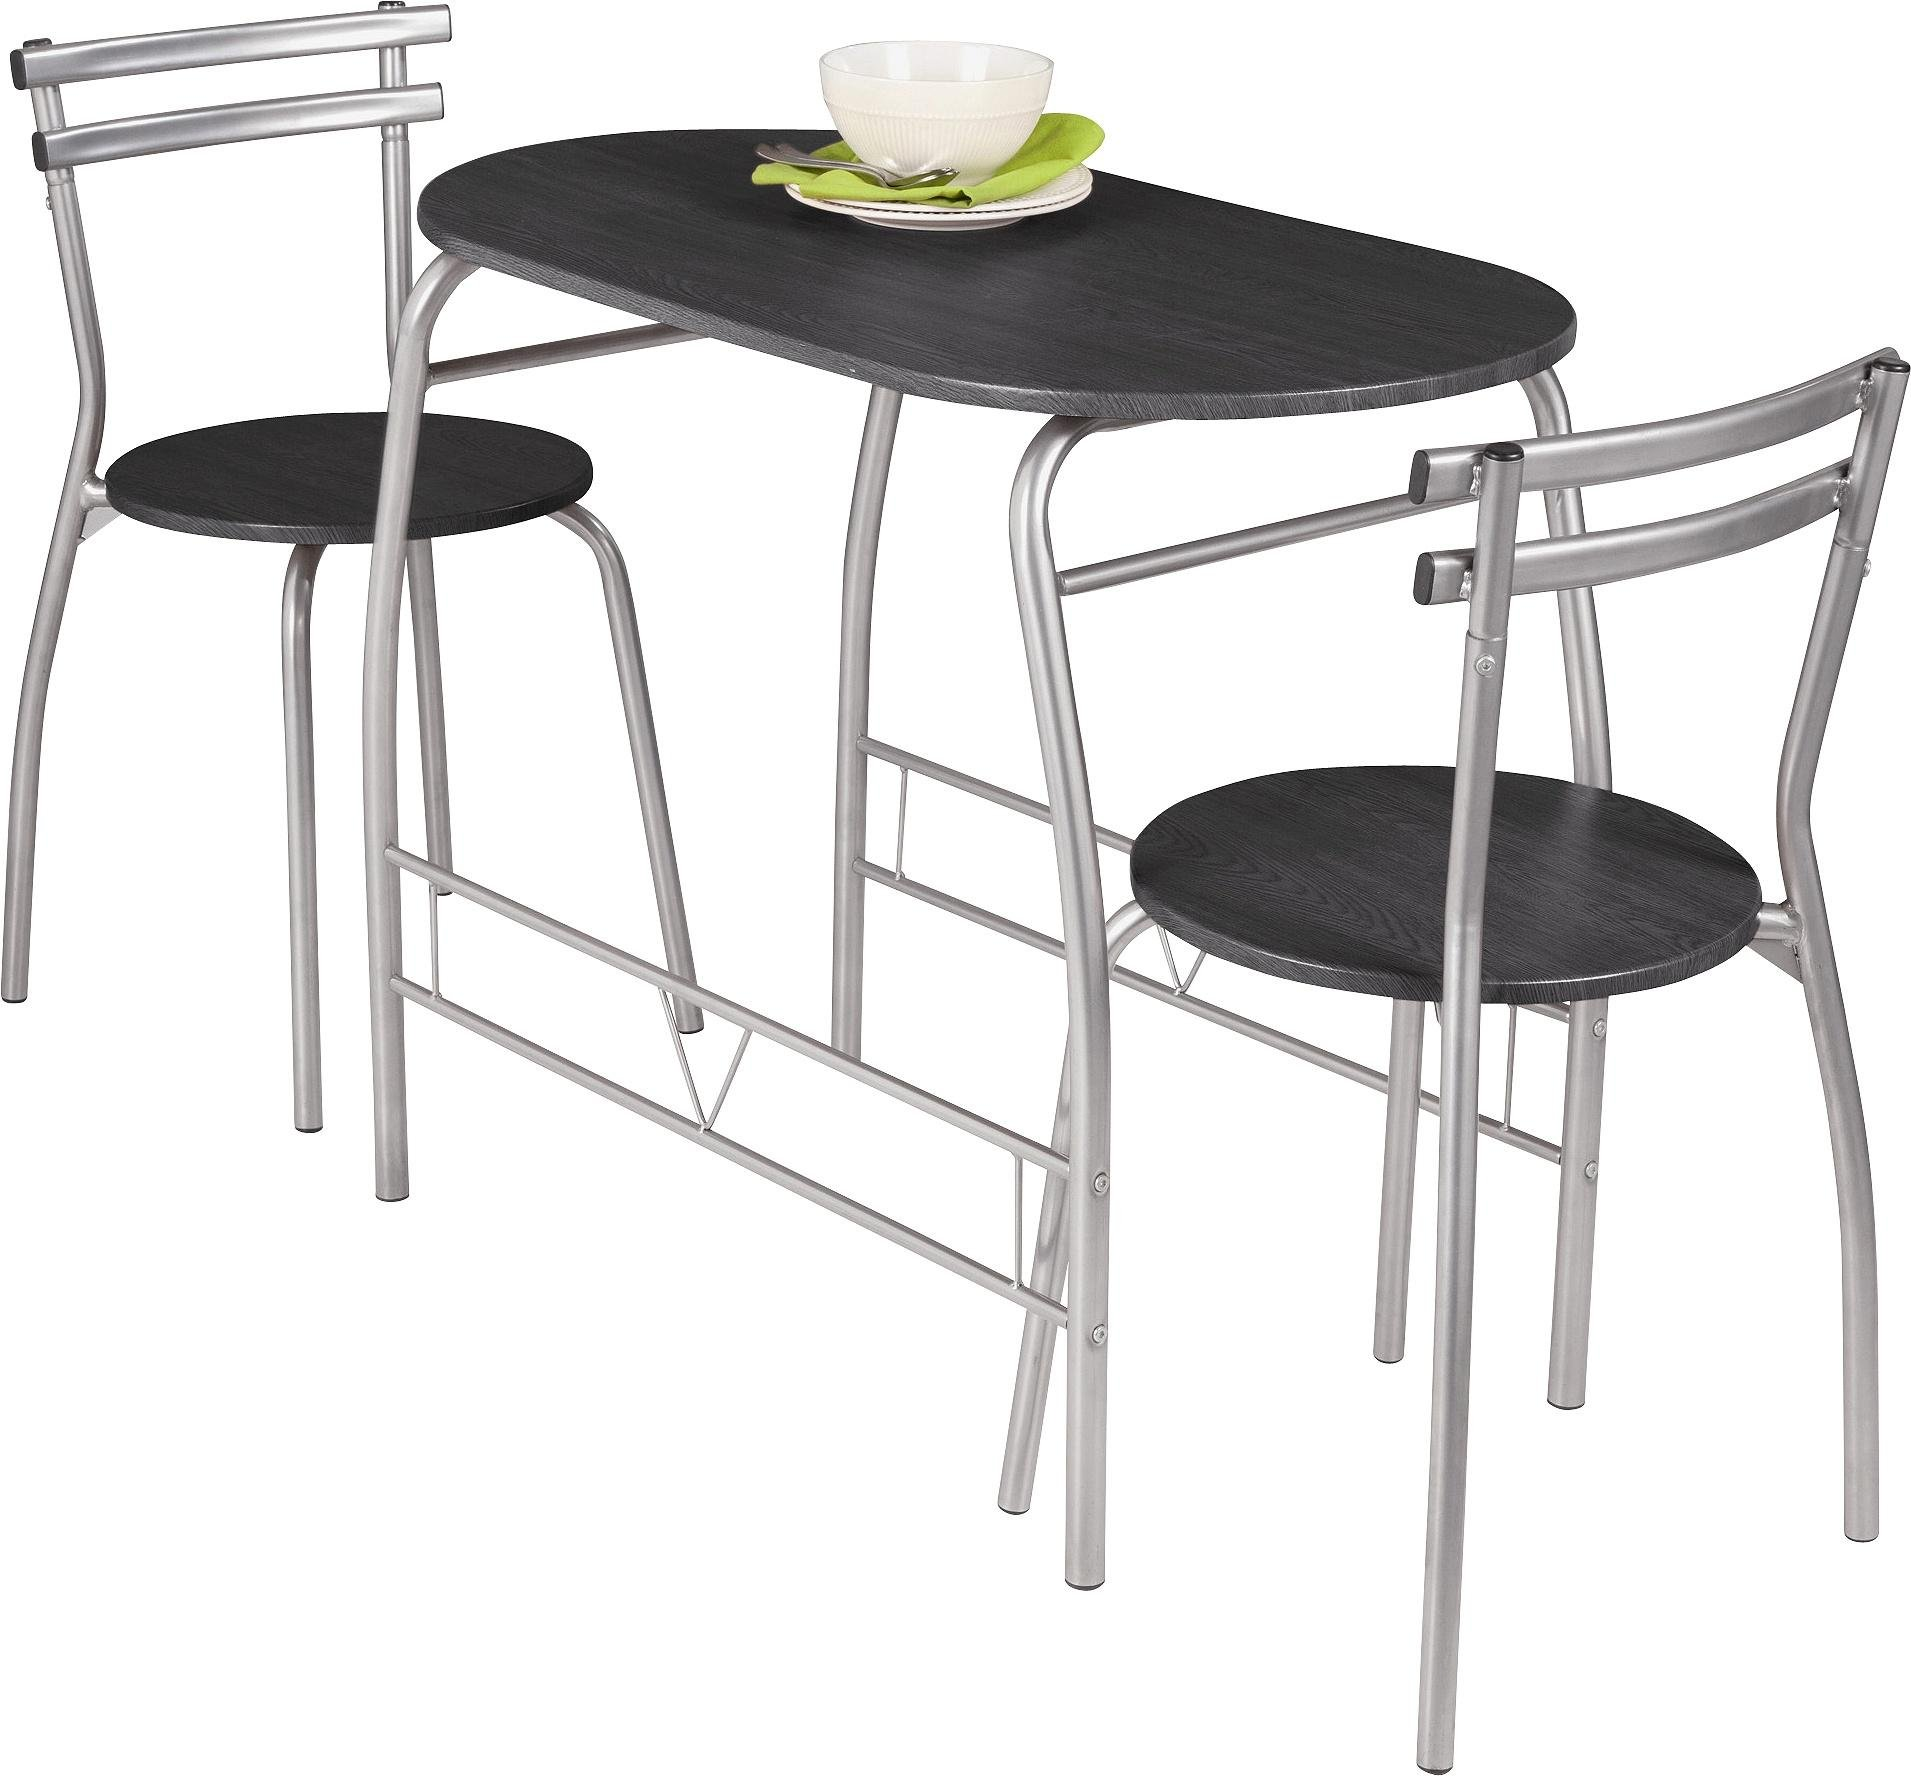 Buy HOME Vegas Dining Table and 2 Chairs Black at Argos  : 6006486RZ001AWebampw570amph513 from www.argos.co.uk size 570 x 513 jpeg 31kB